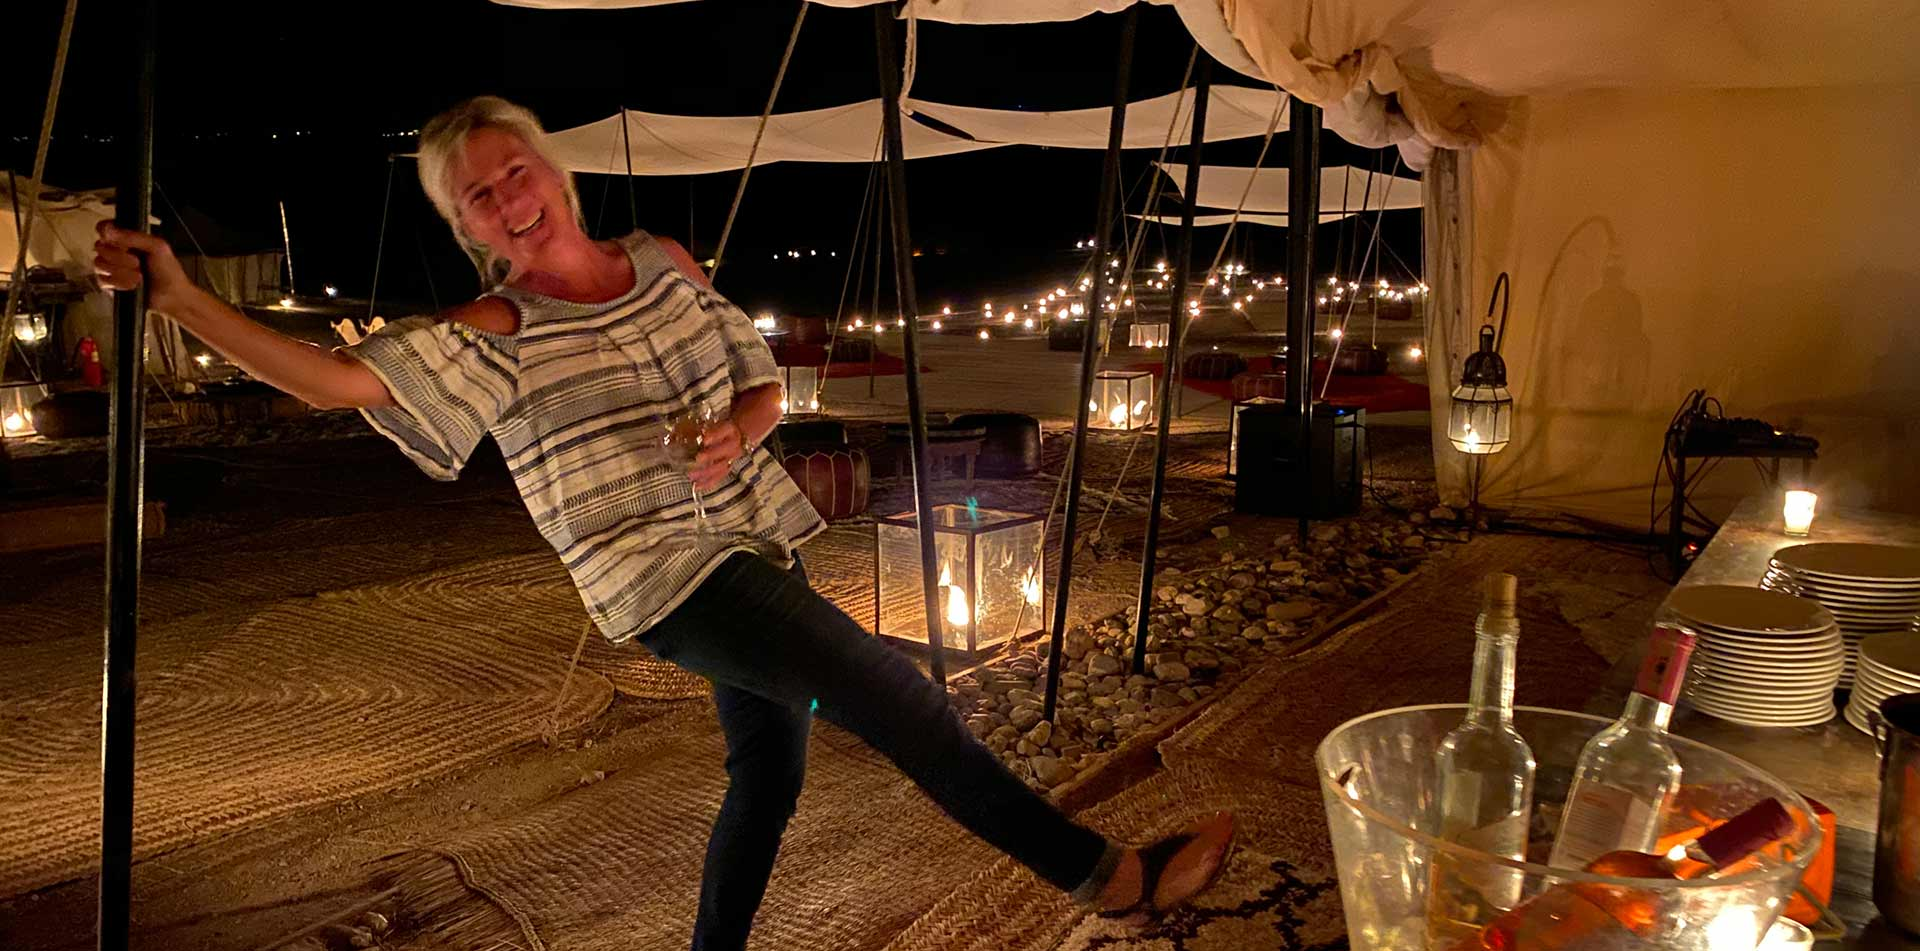 Africa Morocco Agafay Desert Scarabeo Camp bright lights at night woman smiling kicking leg - luxury vacation destinations